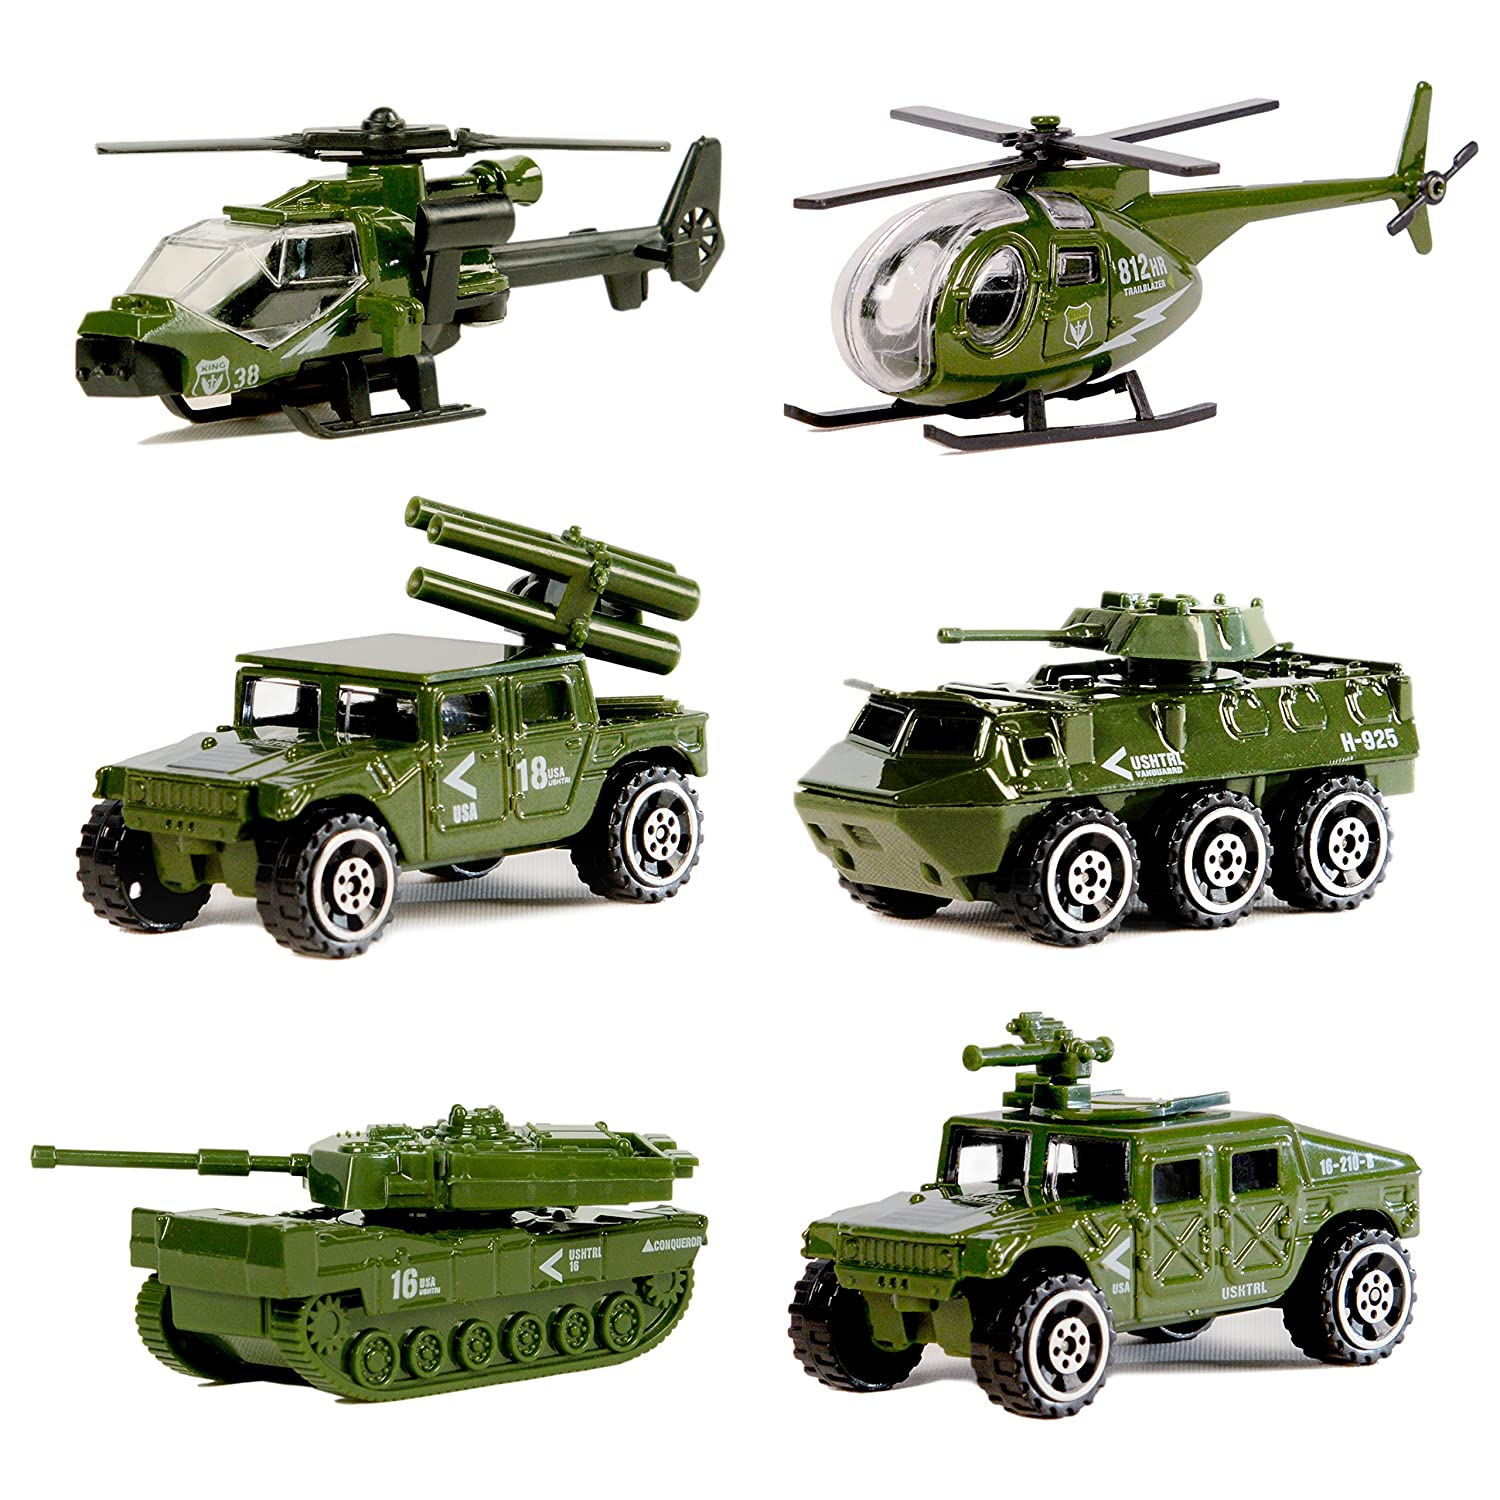 Die-cast Military Vehicles, 6 Pack Assorted Alloy Metal Army Vehicle Models Car Toys, Original Color Mini Army Toy Tank, Jeep, Panzer, Anti-Air Vehicle, Helicopter Playset for Kids Toddlers Boys